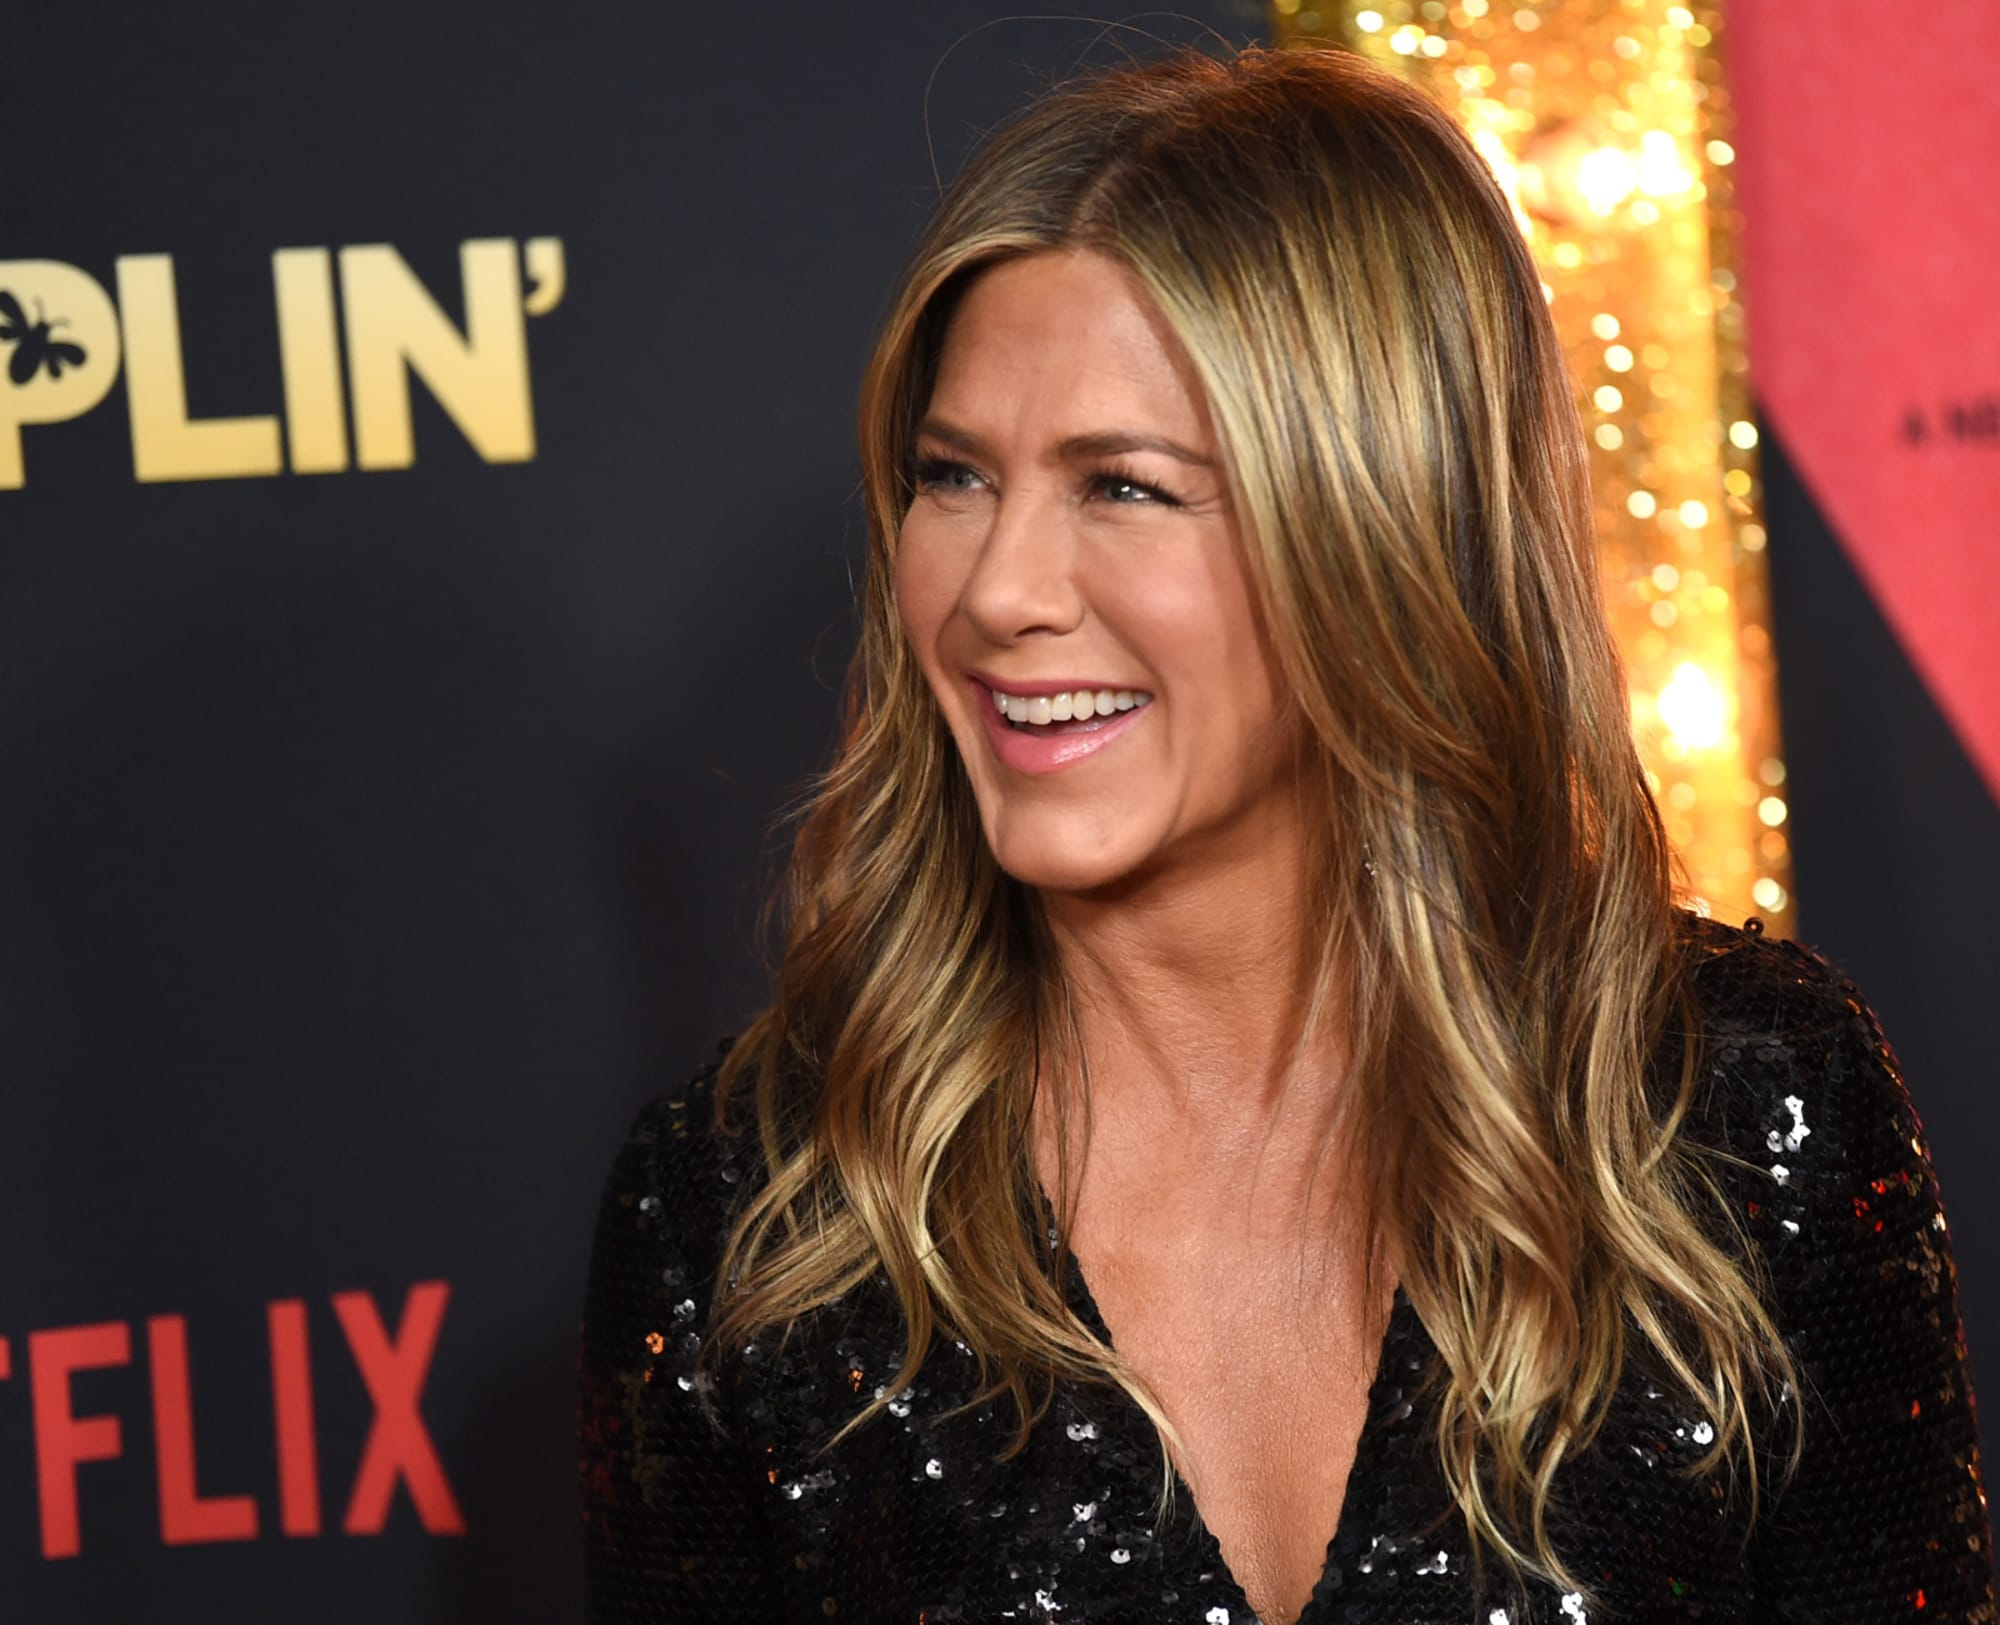 Jennifer Aniston Is Ready To Date Again Four Years After Divorce; Justin Theroux Or David Schwimmer?